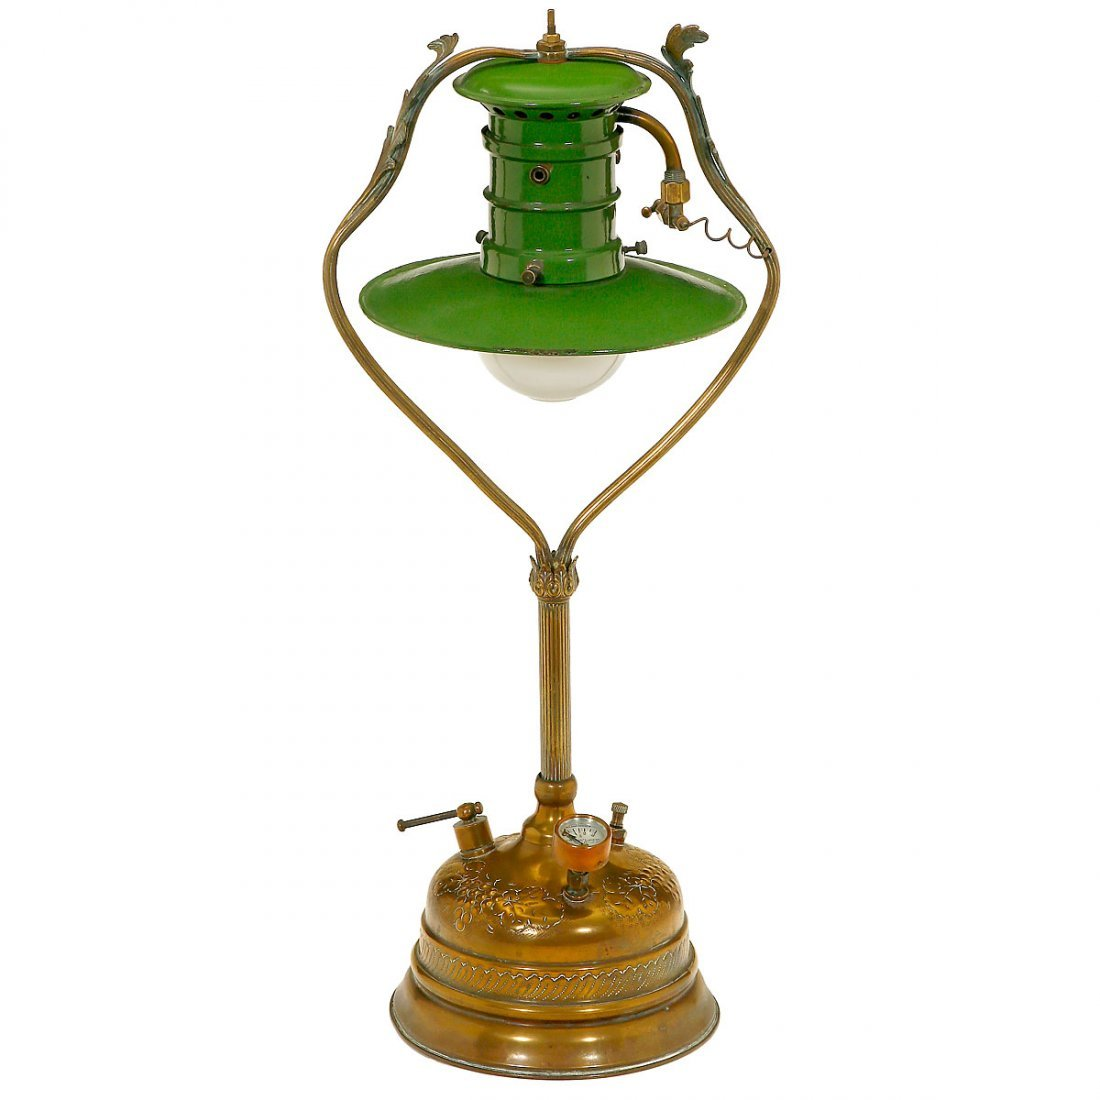 Unic Lumière French Table Lamp, c. 1910